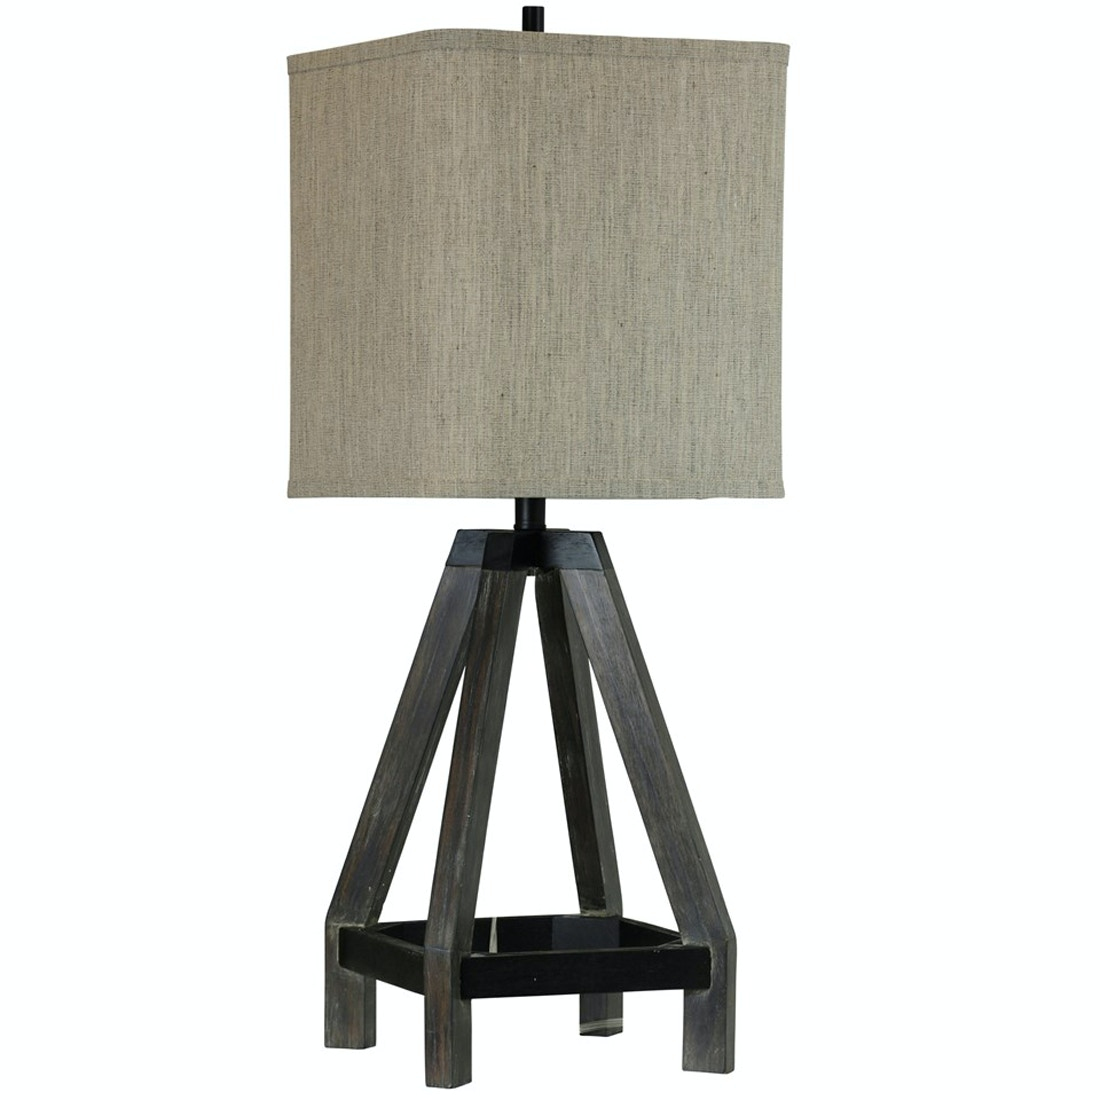 Stylecraft Lamps Wooden Buoy Table Lamp 051660